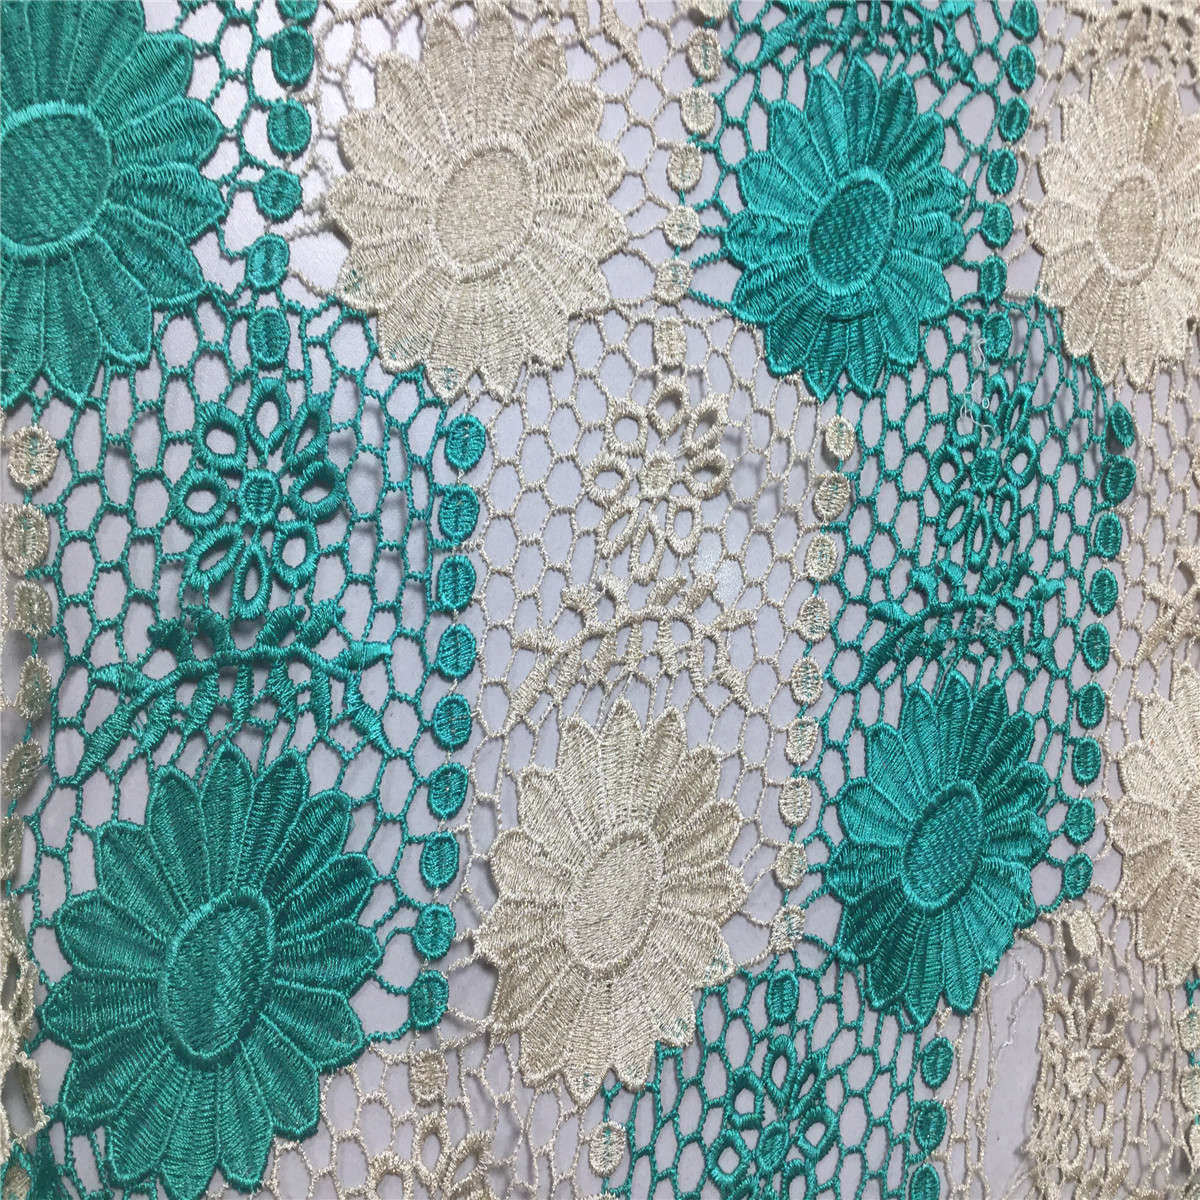 High Quality African Cord Lace Green Nigerian Guipure Lace Fabrics For Women Latest Nigerian Cord Lace 2017 African Lace Fabric